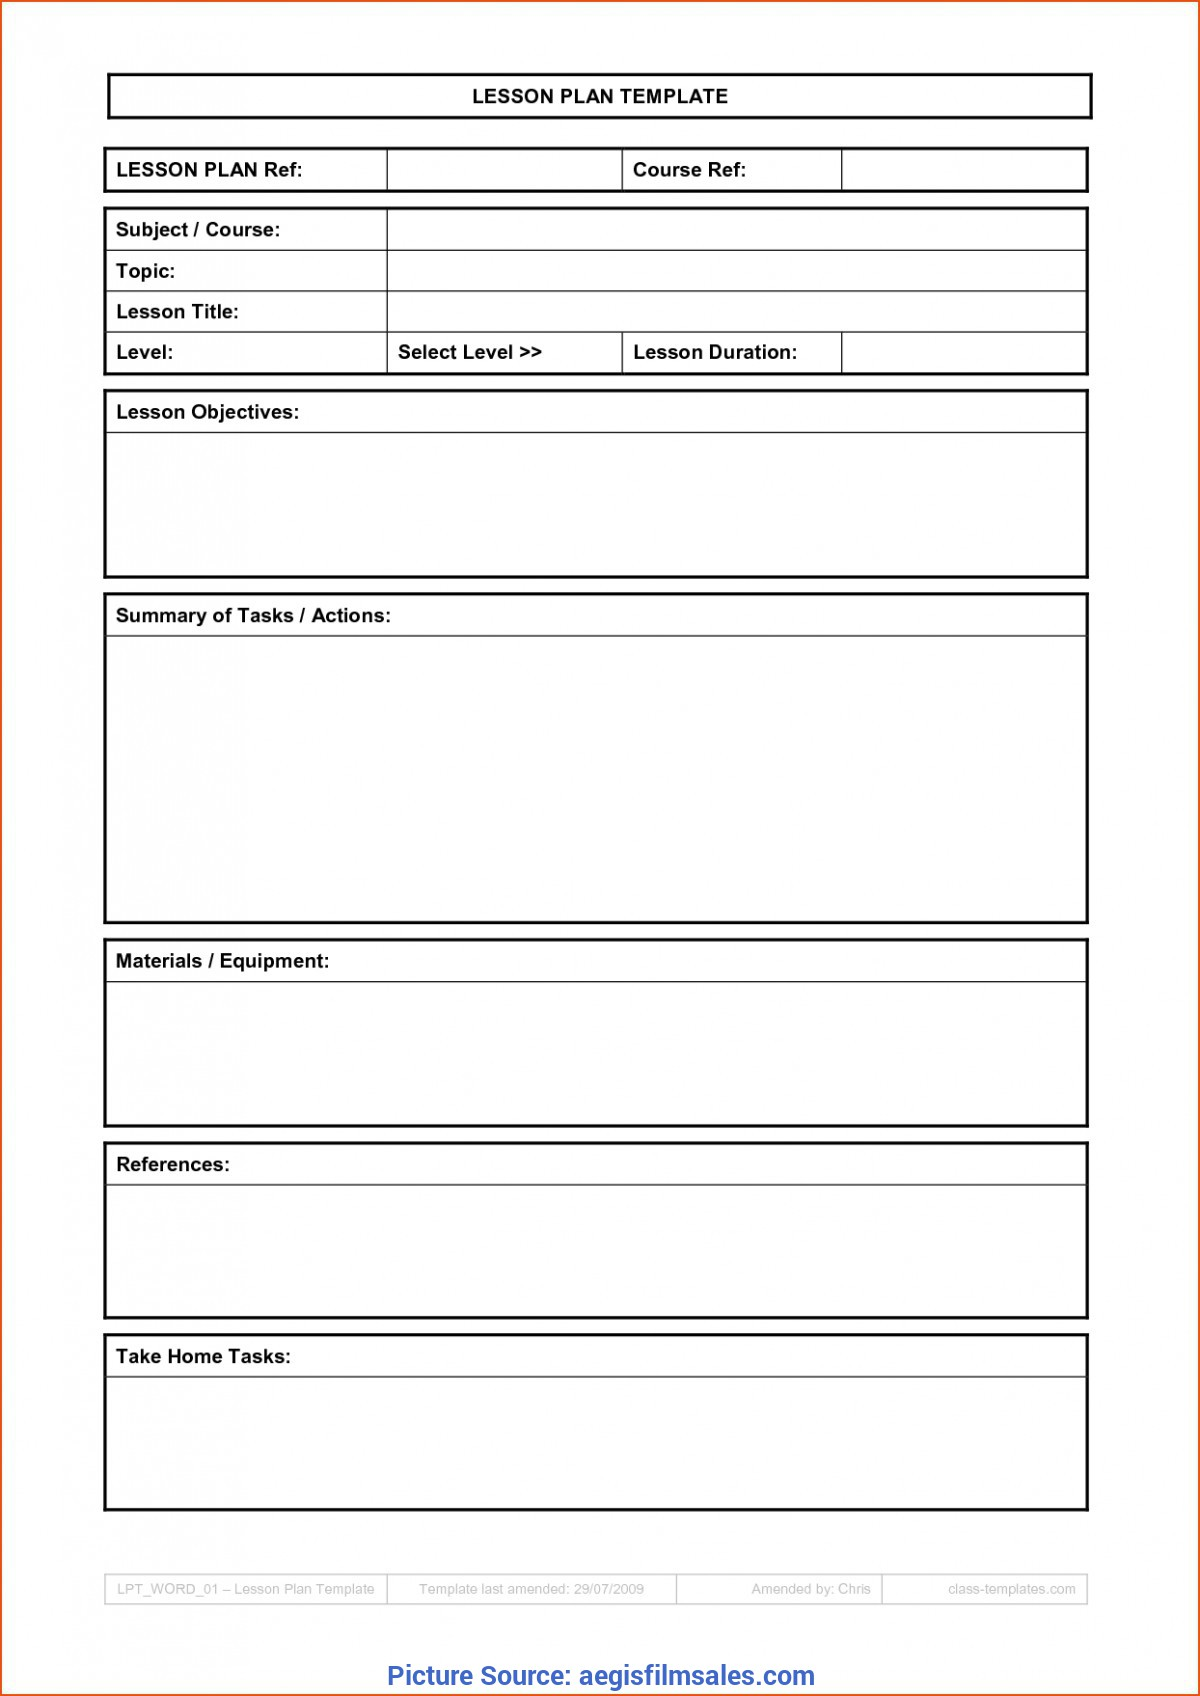 Typical Simple Blank Lesson Plan Template Basic Lesson Plan Template | The Free Website Templ